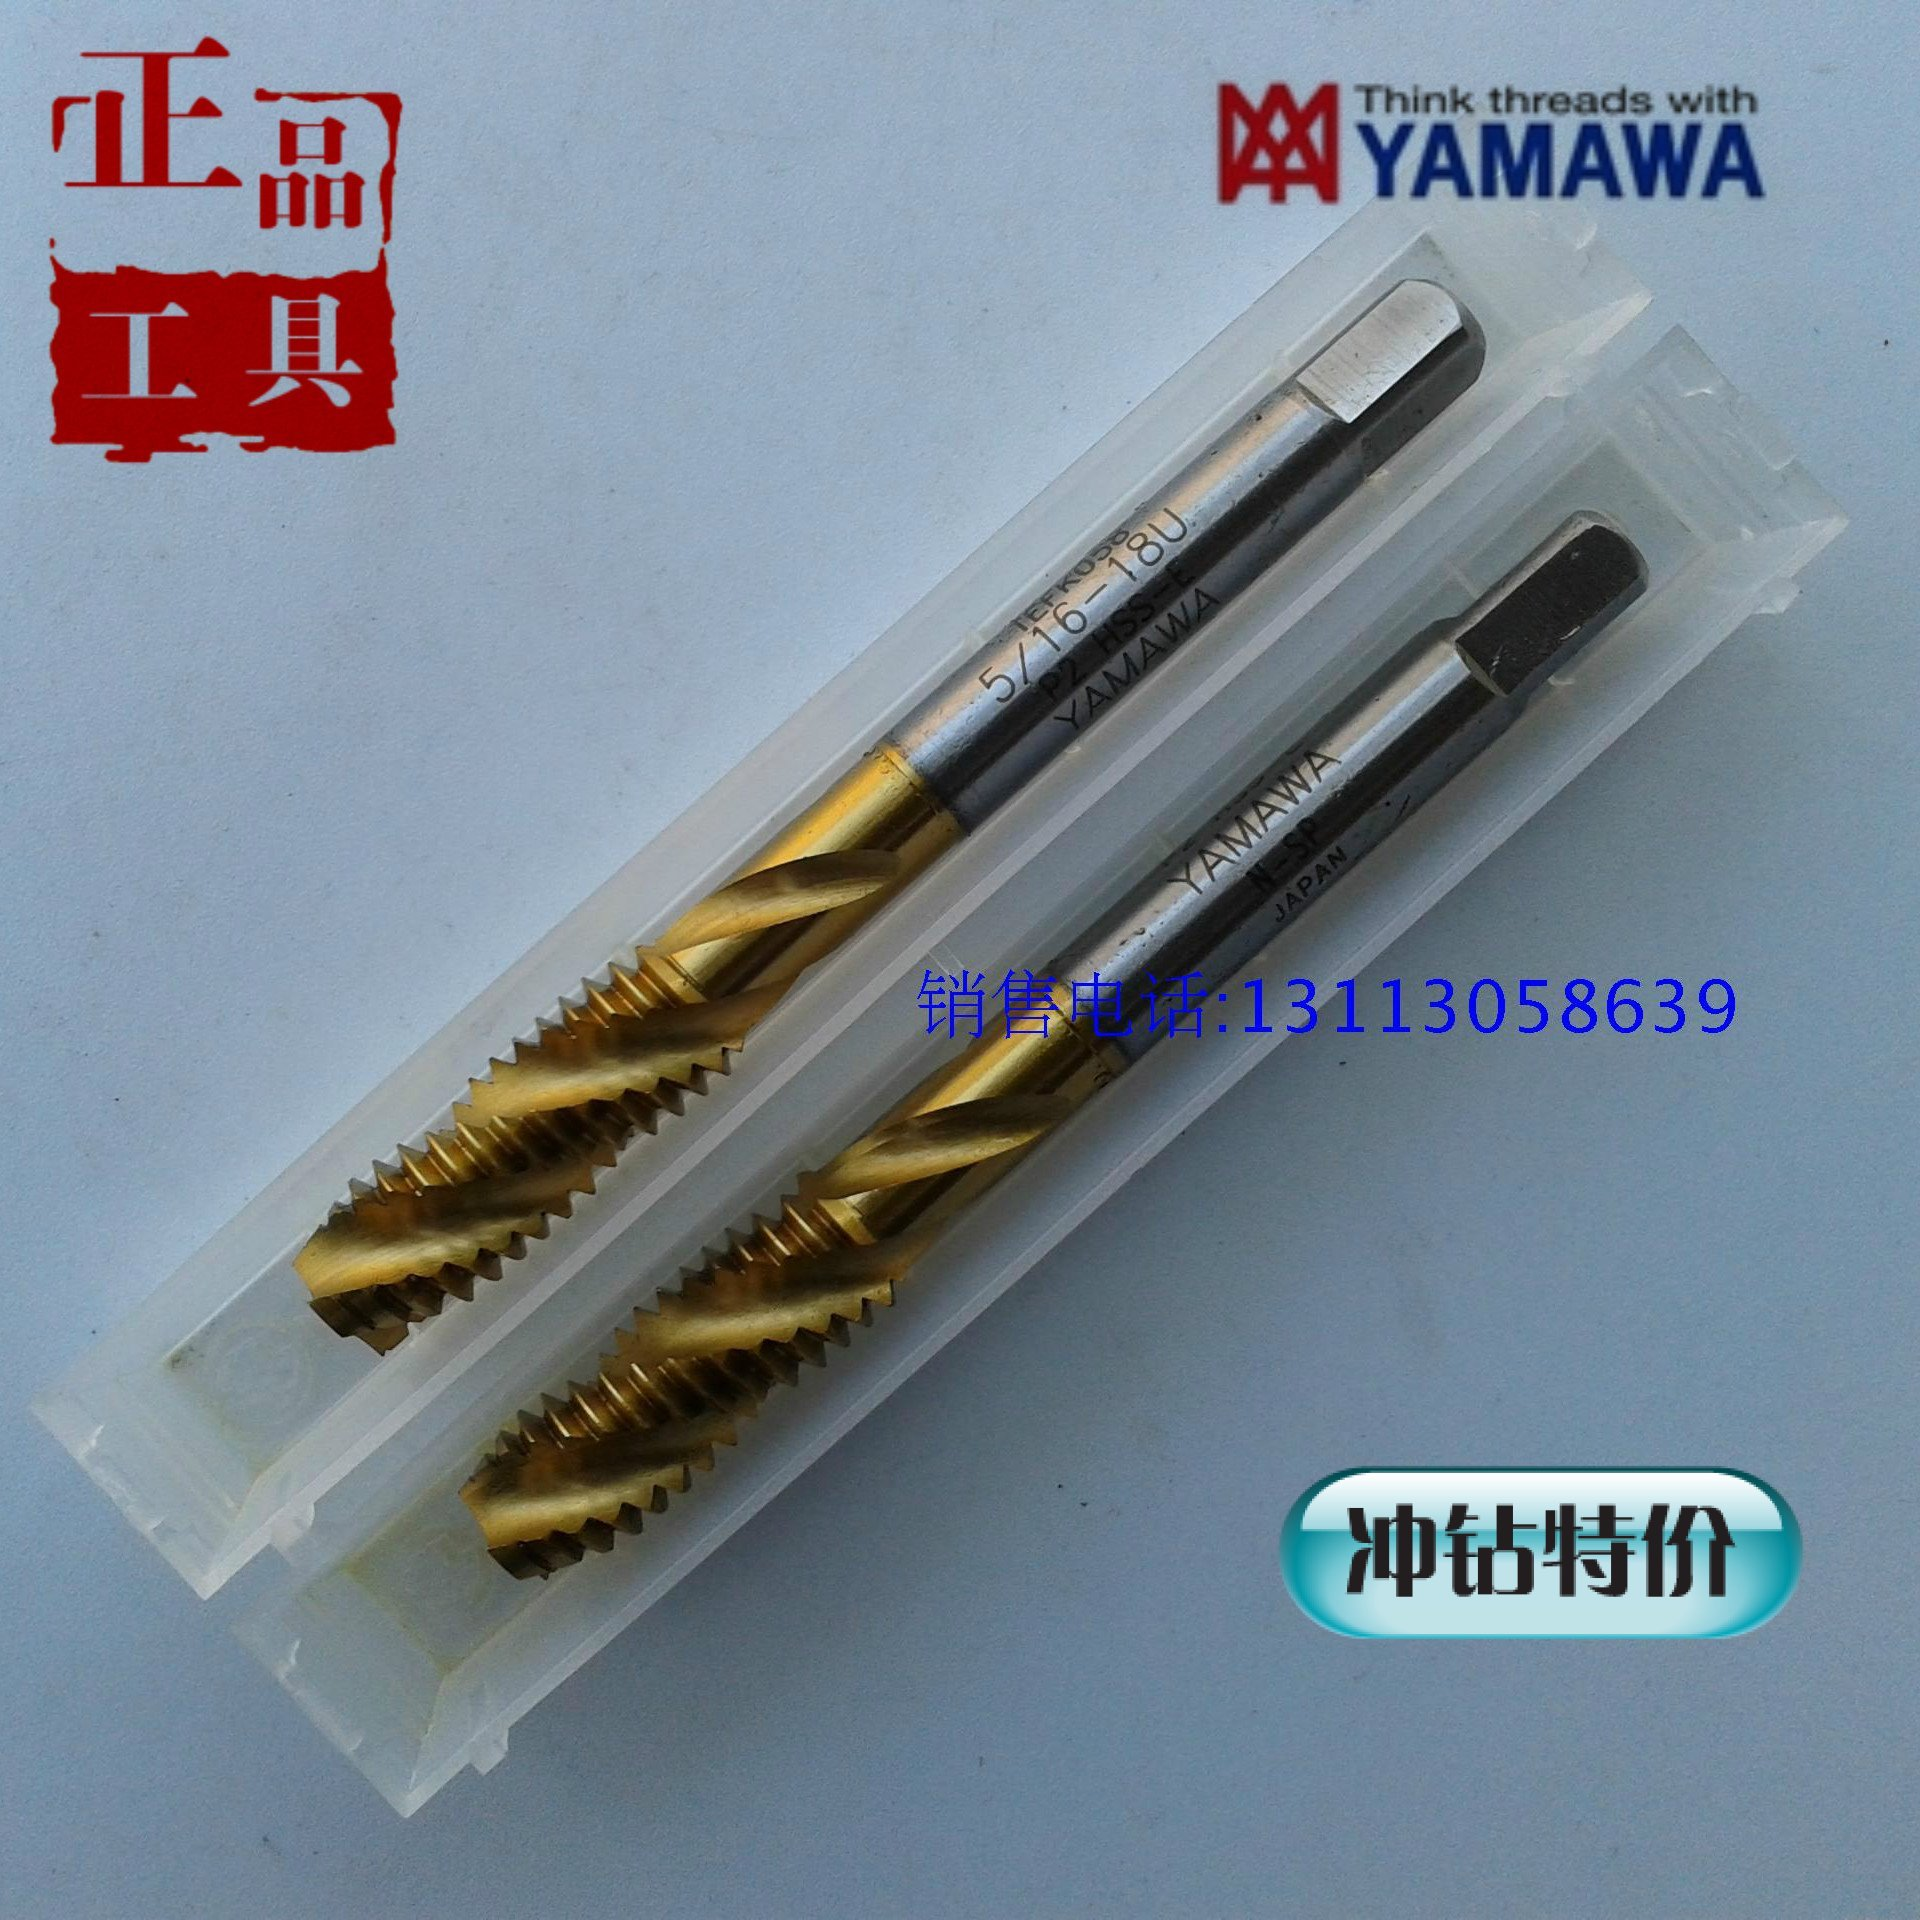 Japanese YAMAWA U5/16-183/8-161/4-2010-2432 stainless steel titanium spiral screw